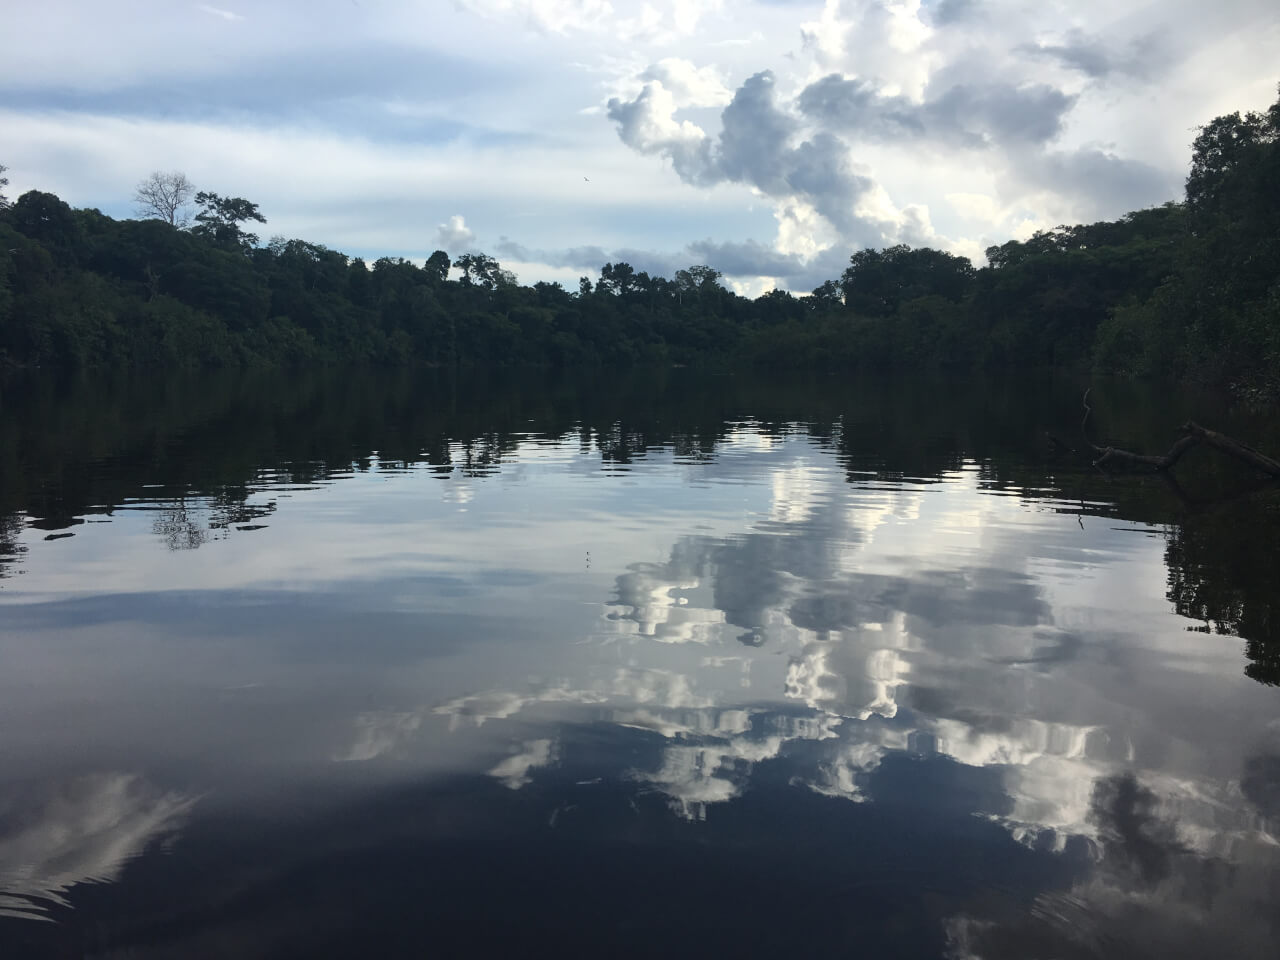 A Week in the Peruvian Amazon: Part 1